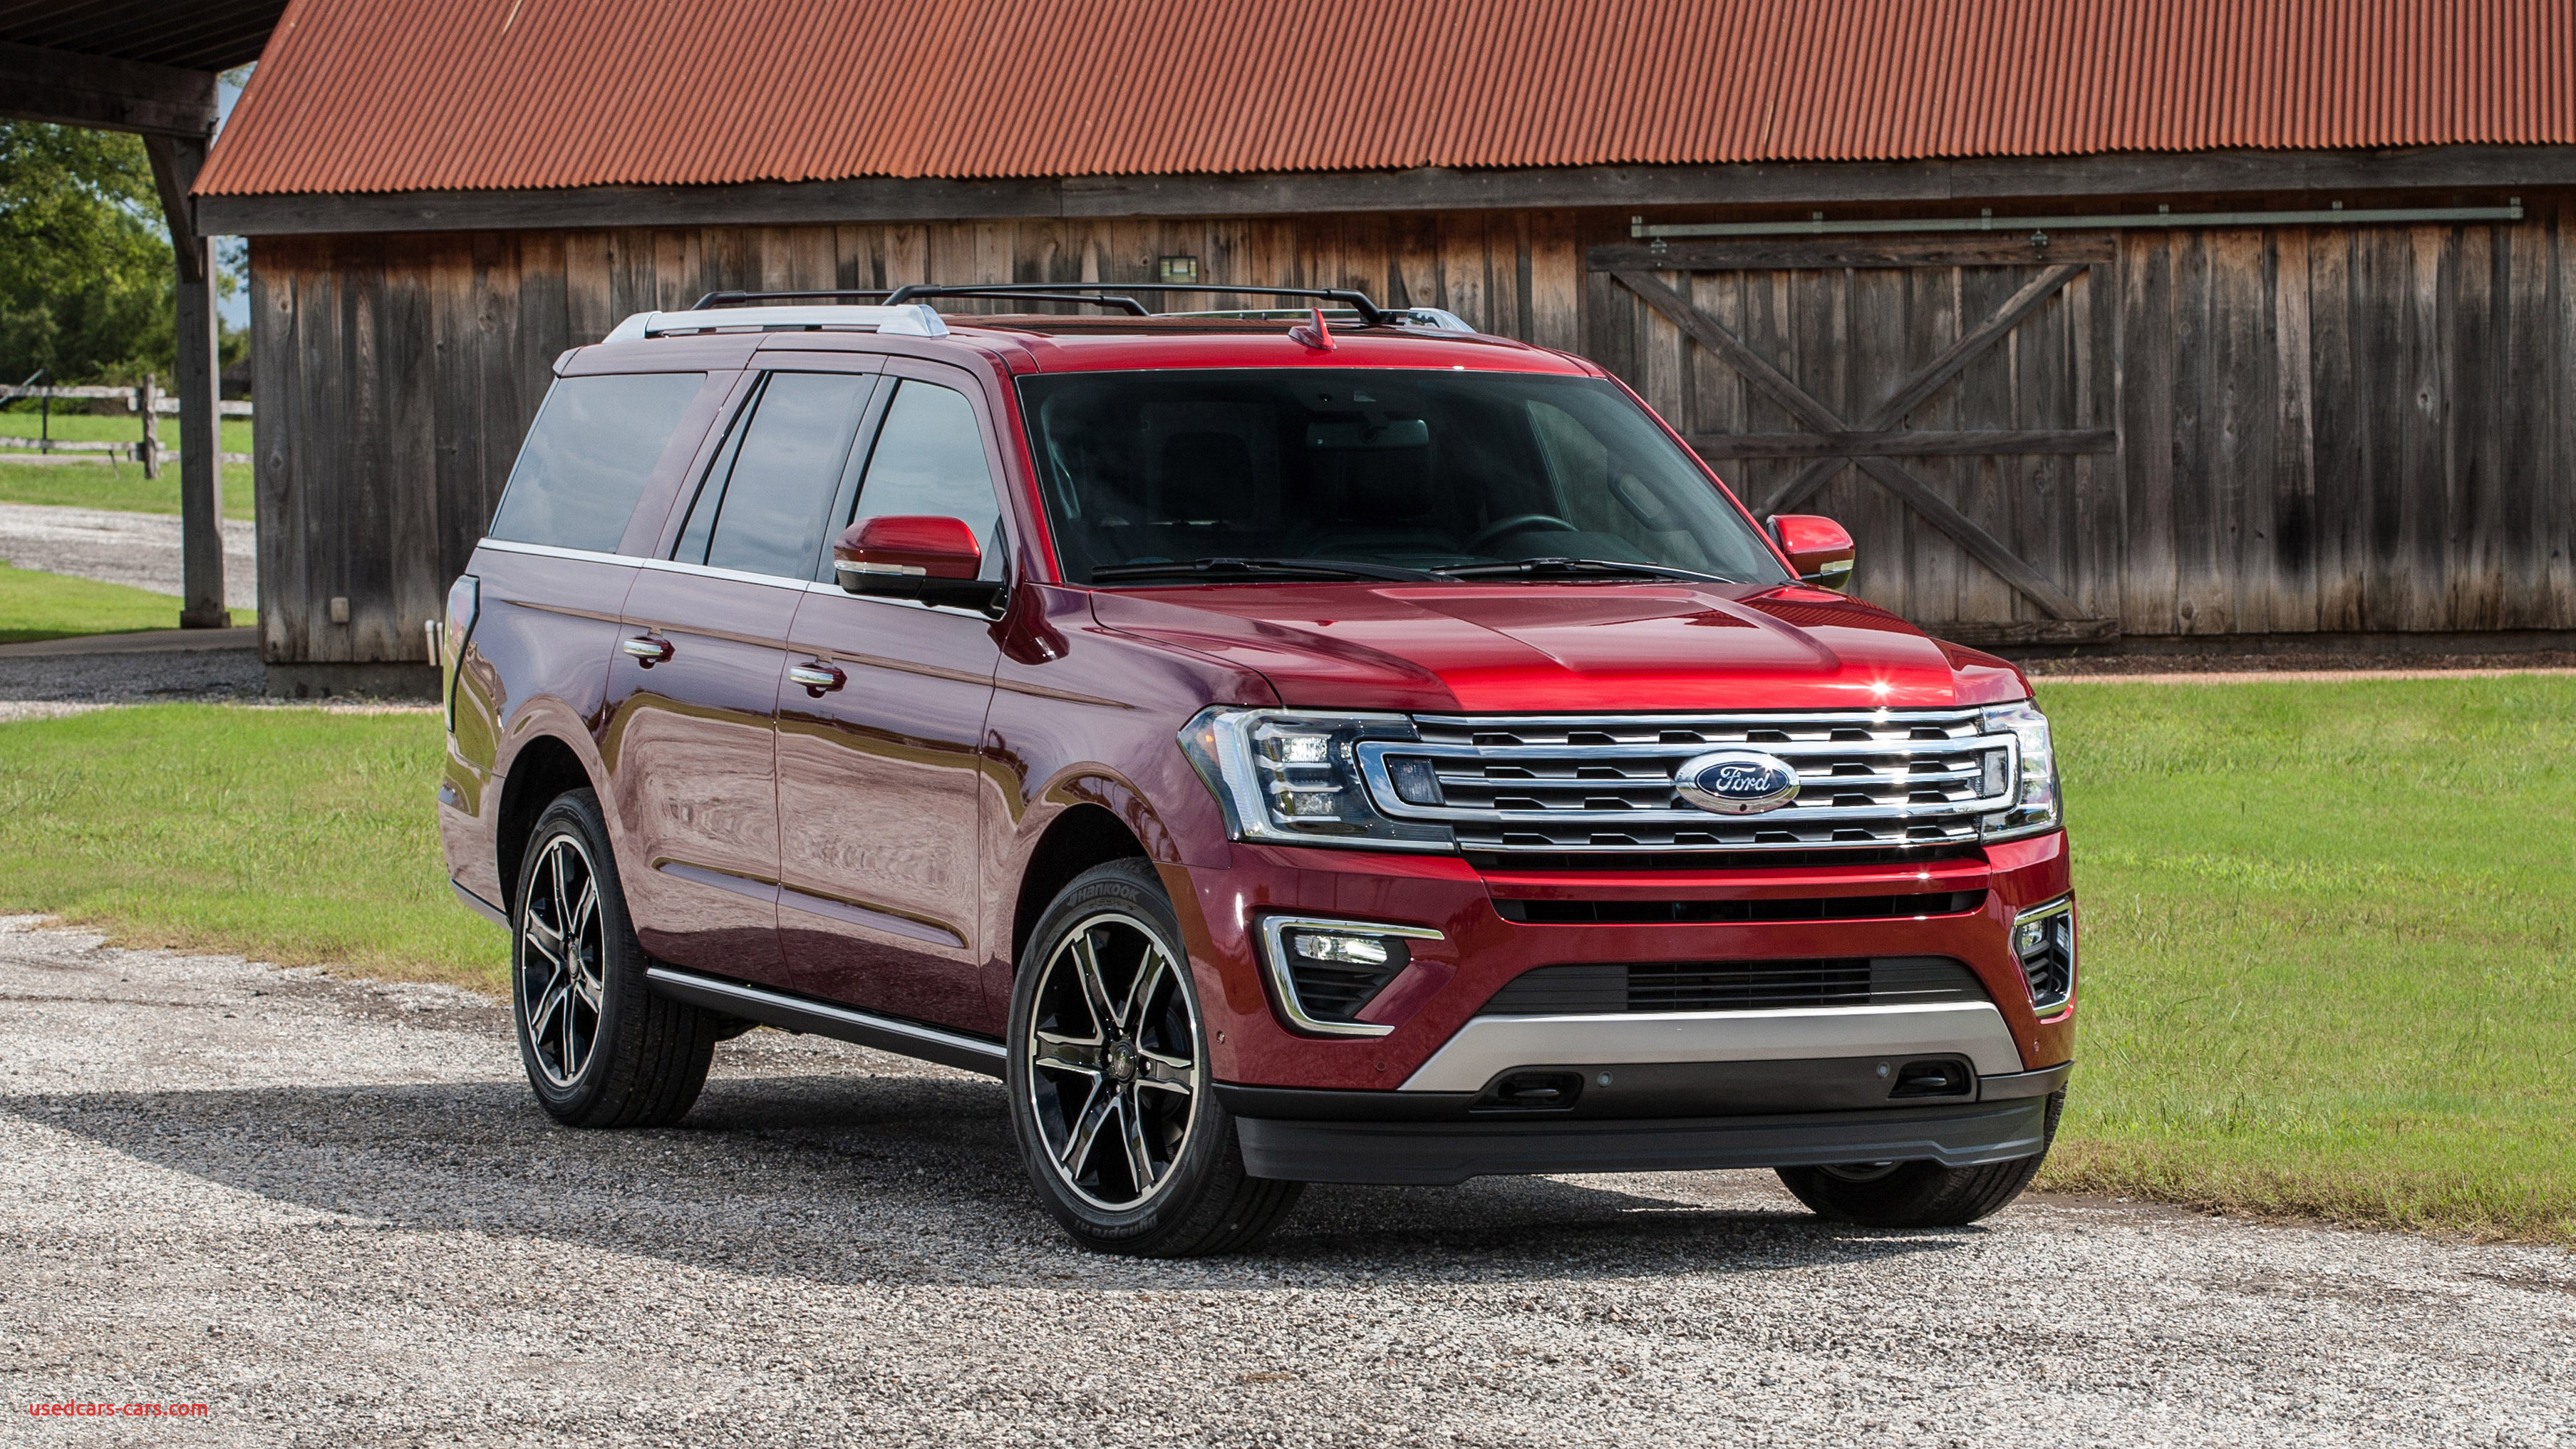 2020 ford Bronco 4 Door Price Unique 2020 ford Expedition Reviews